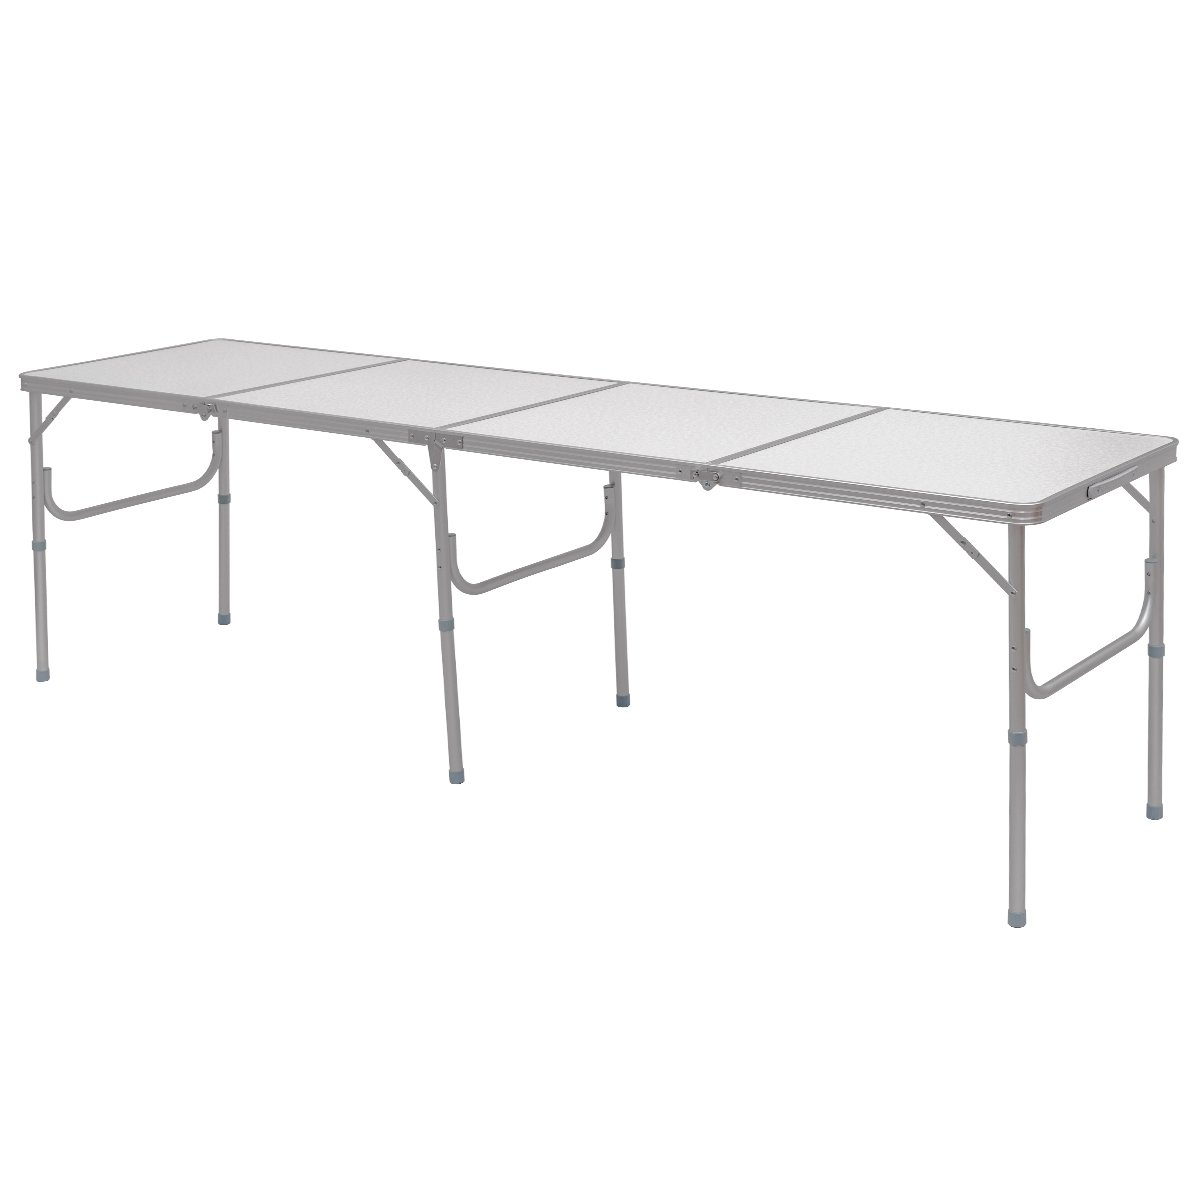 Giantex 8FT Portable Aluminum Folding Table Carrying Handle Picnic Indoor Outdoor Camping